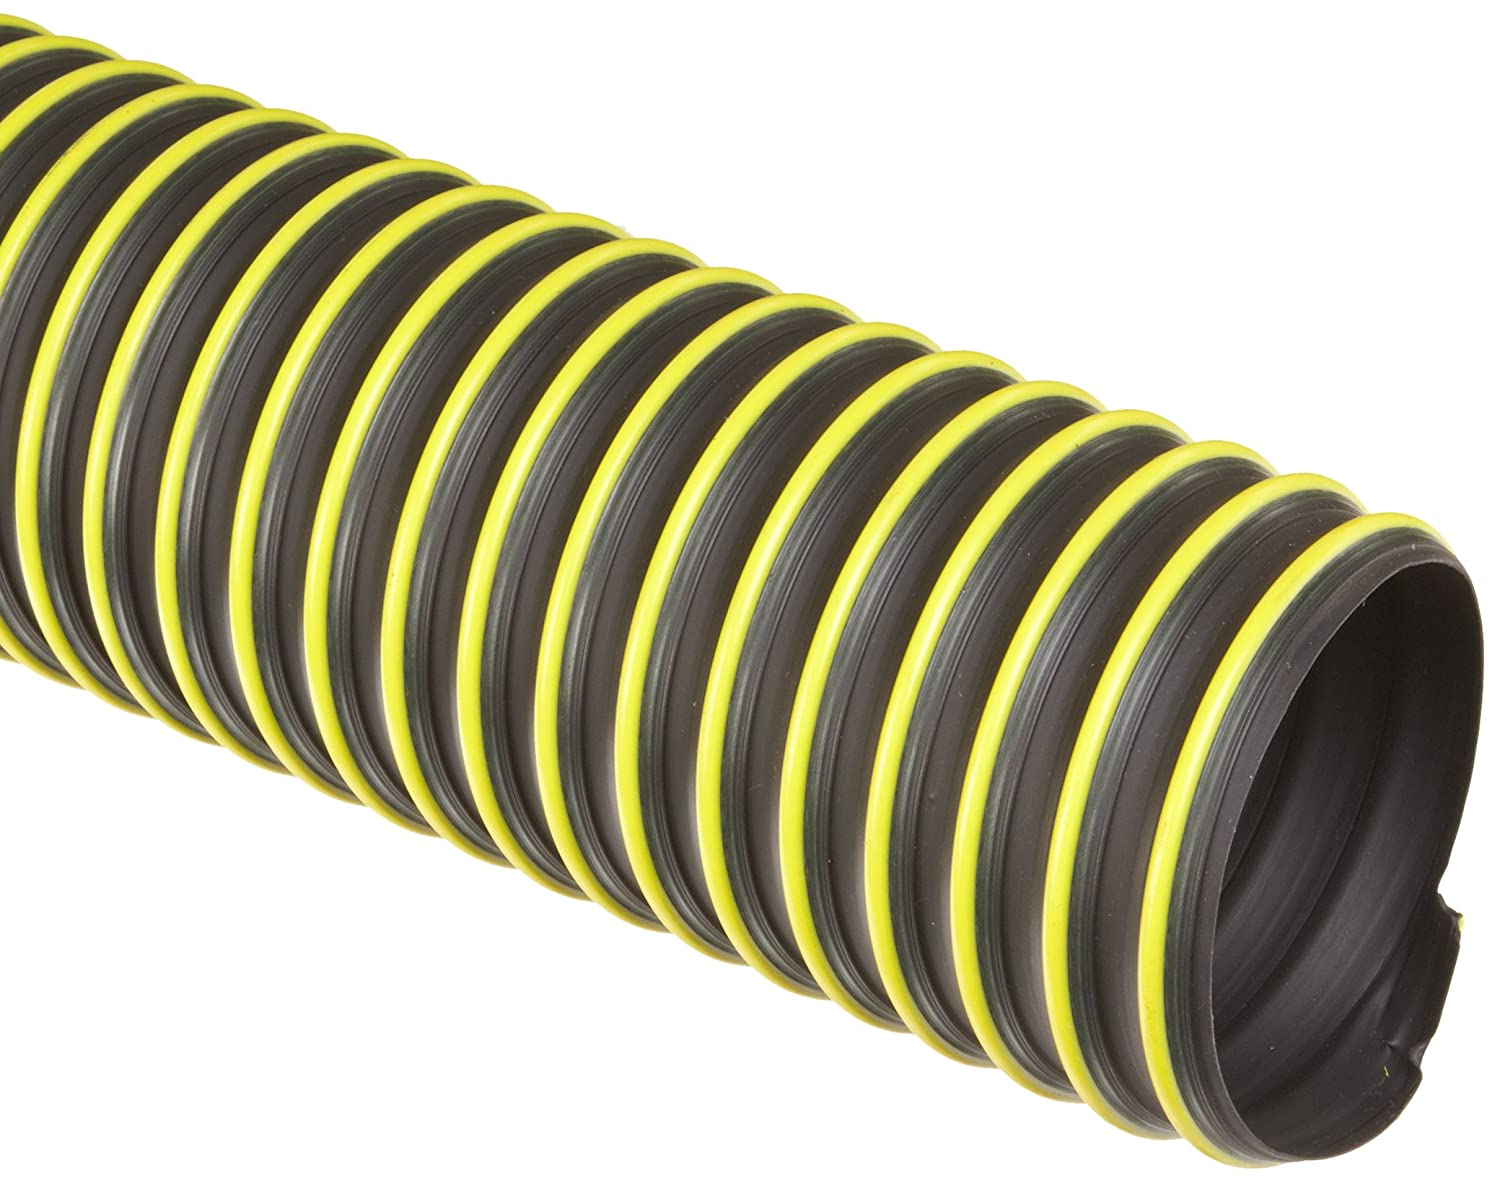 "Flexadux T-7W Thermoplastic Rubber Duct Hose, Black, 8"" ID, 0.030"" Wall, 25' Length"